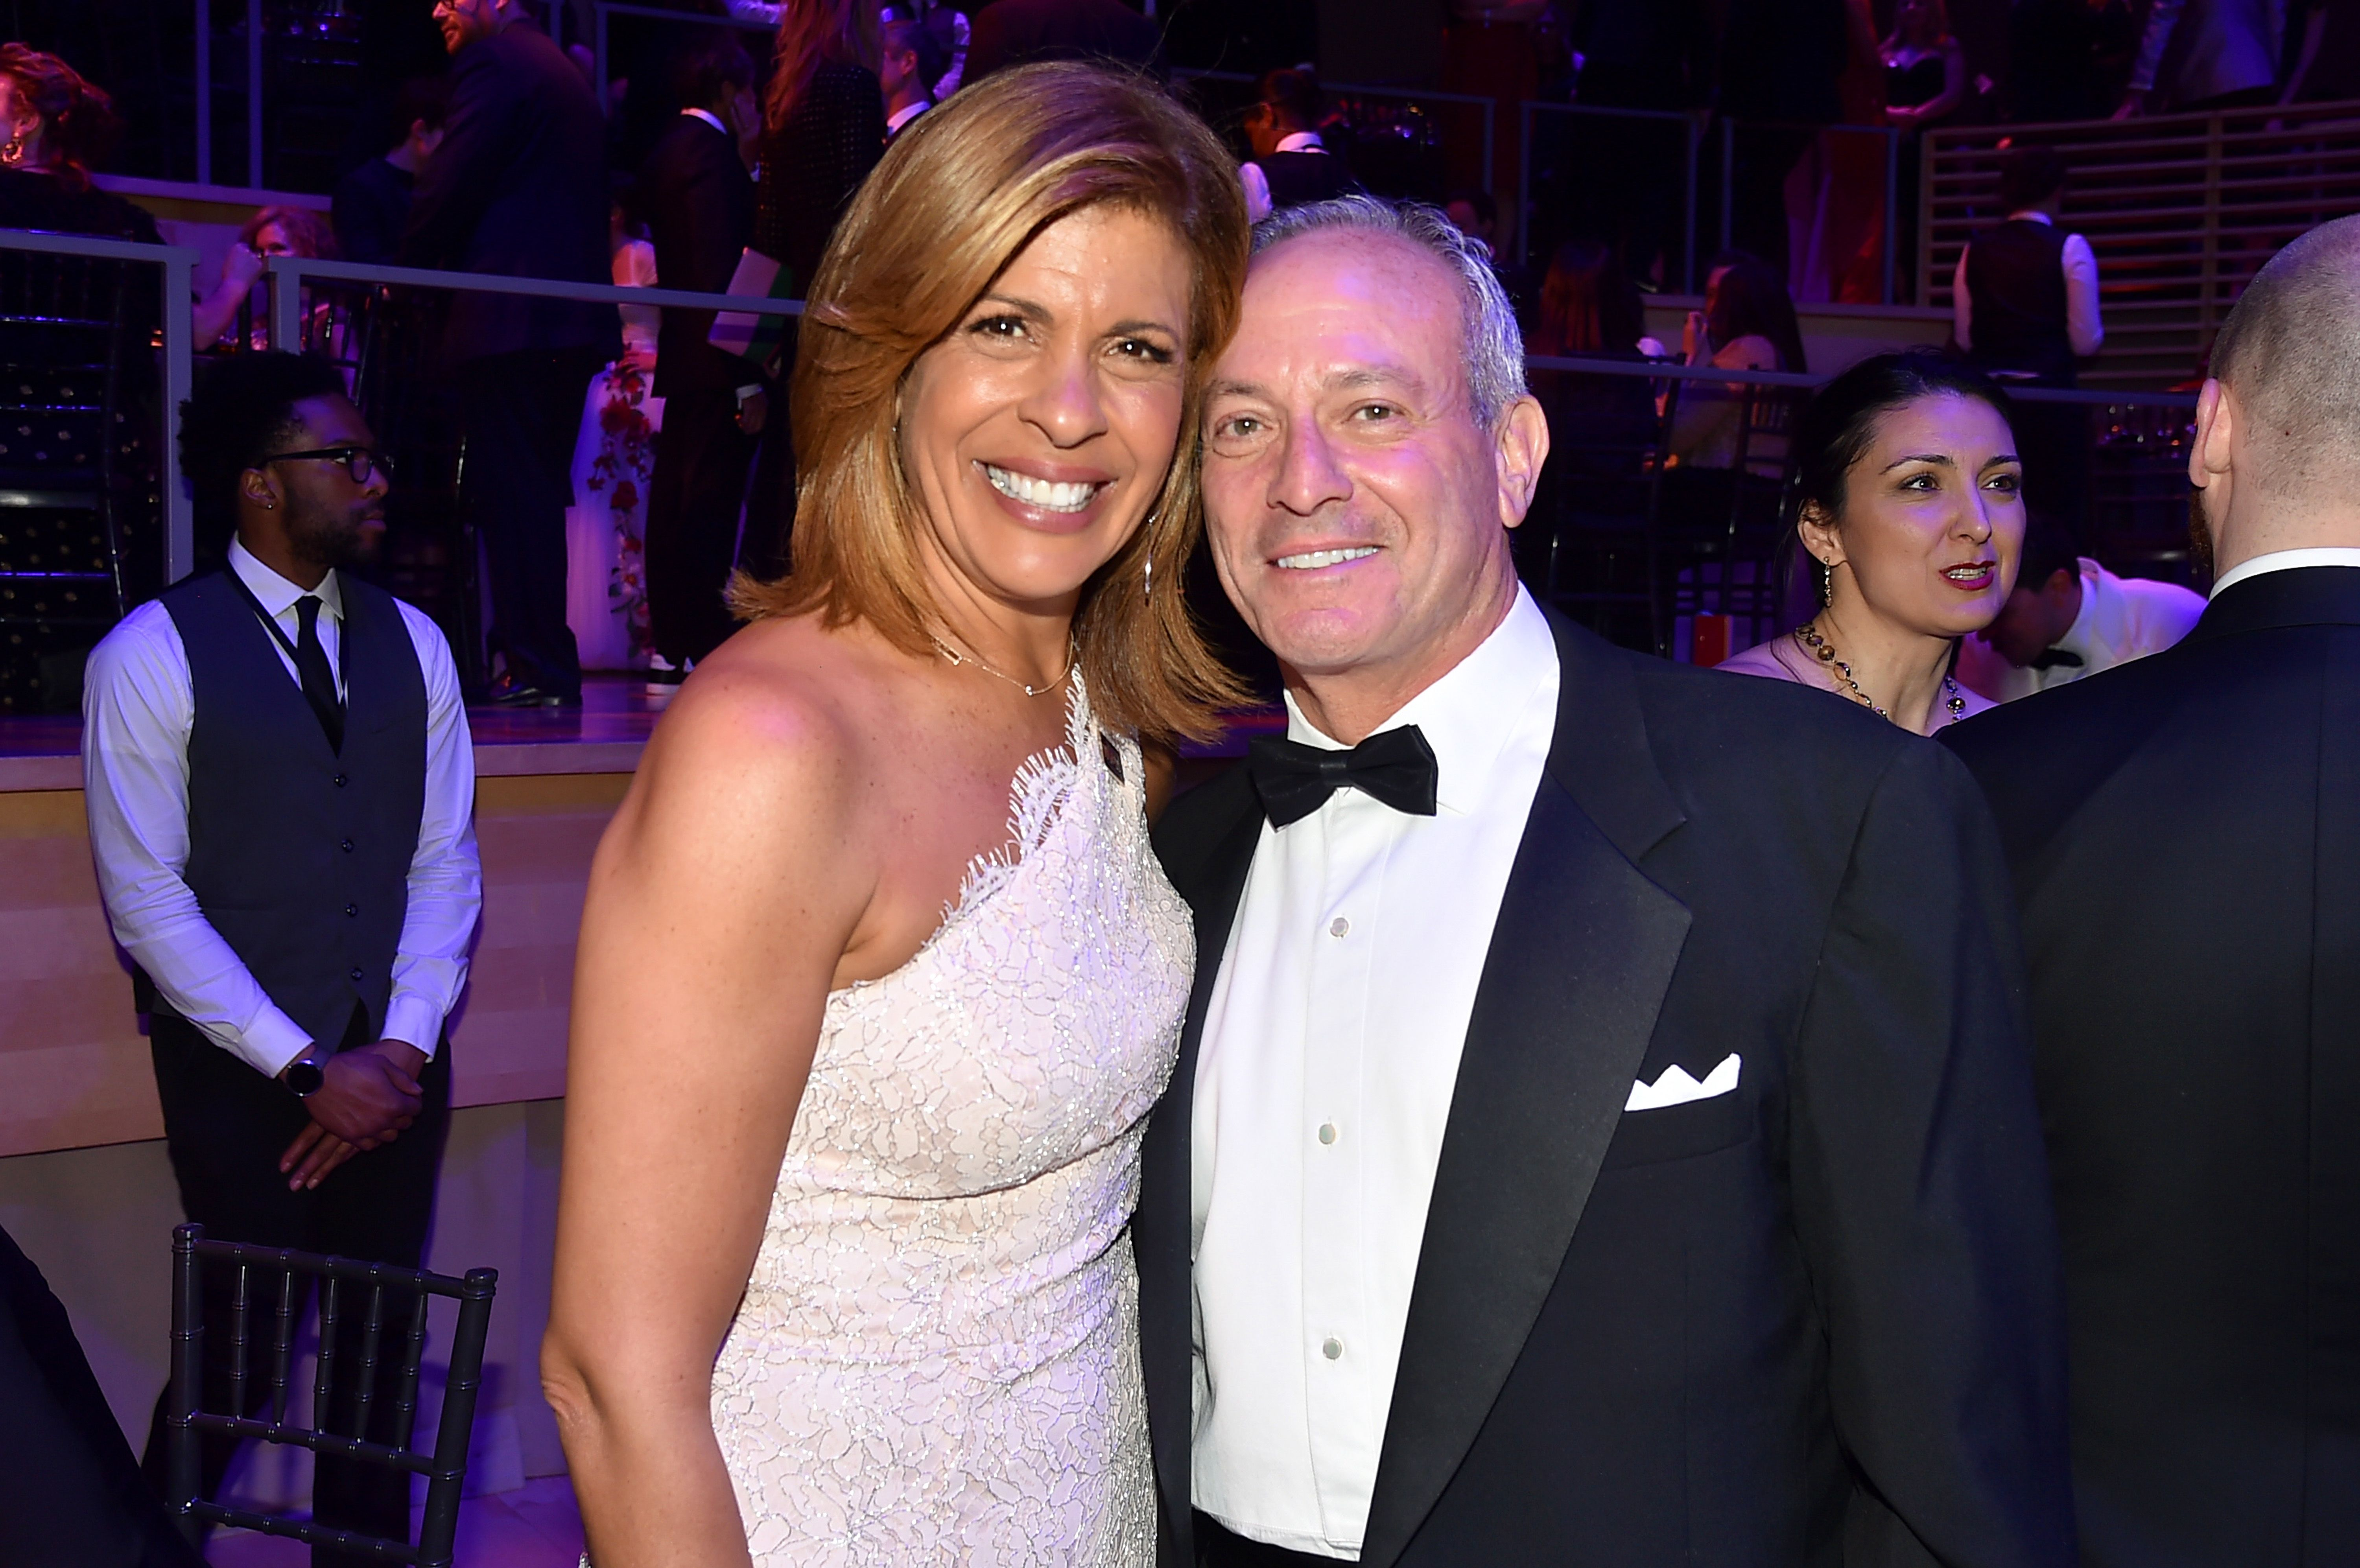 5 Things You Need to Know About Hoda Kotb's Fiancé, Joel Schiffman